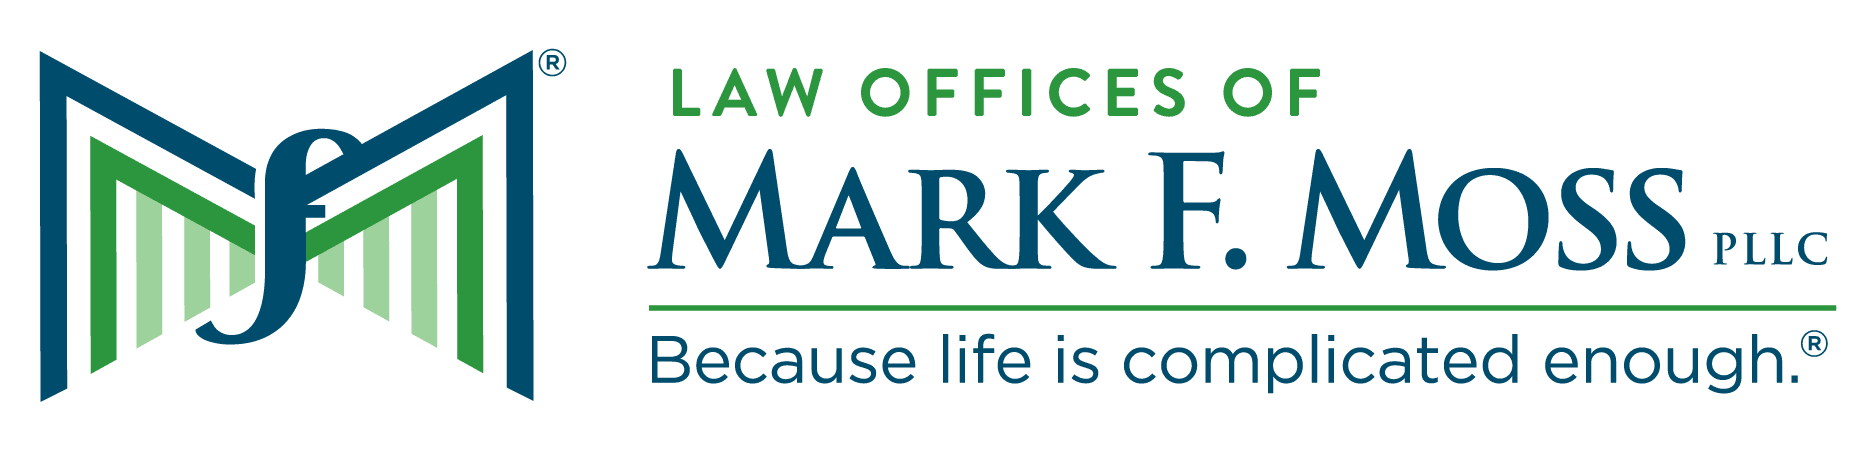 Law Offices of Mark Moss Logo